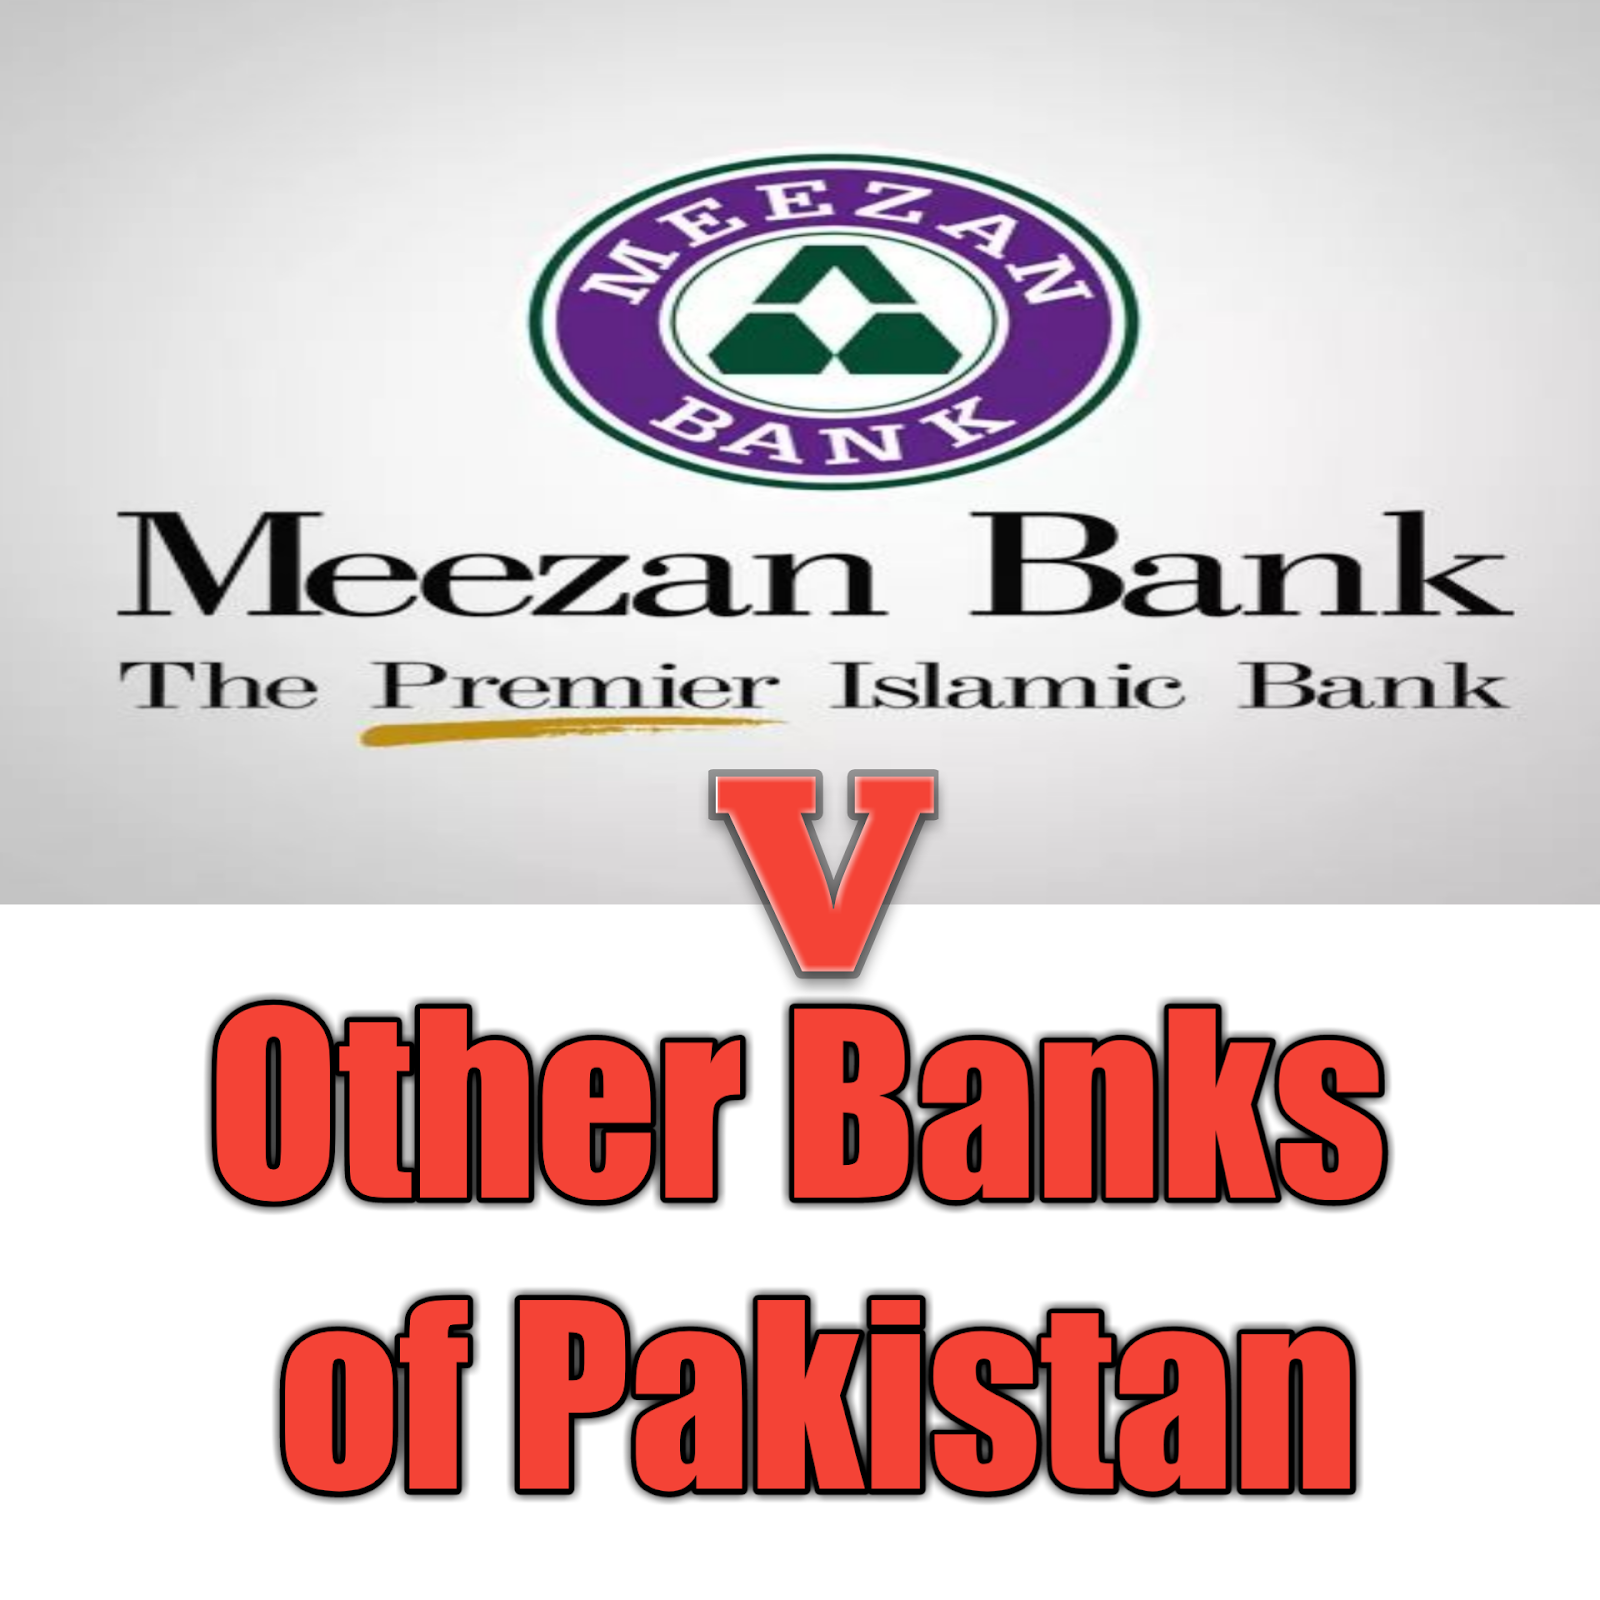 General Knowledge: Meezan Bank Ltd Vs Others Pakistani Banks